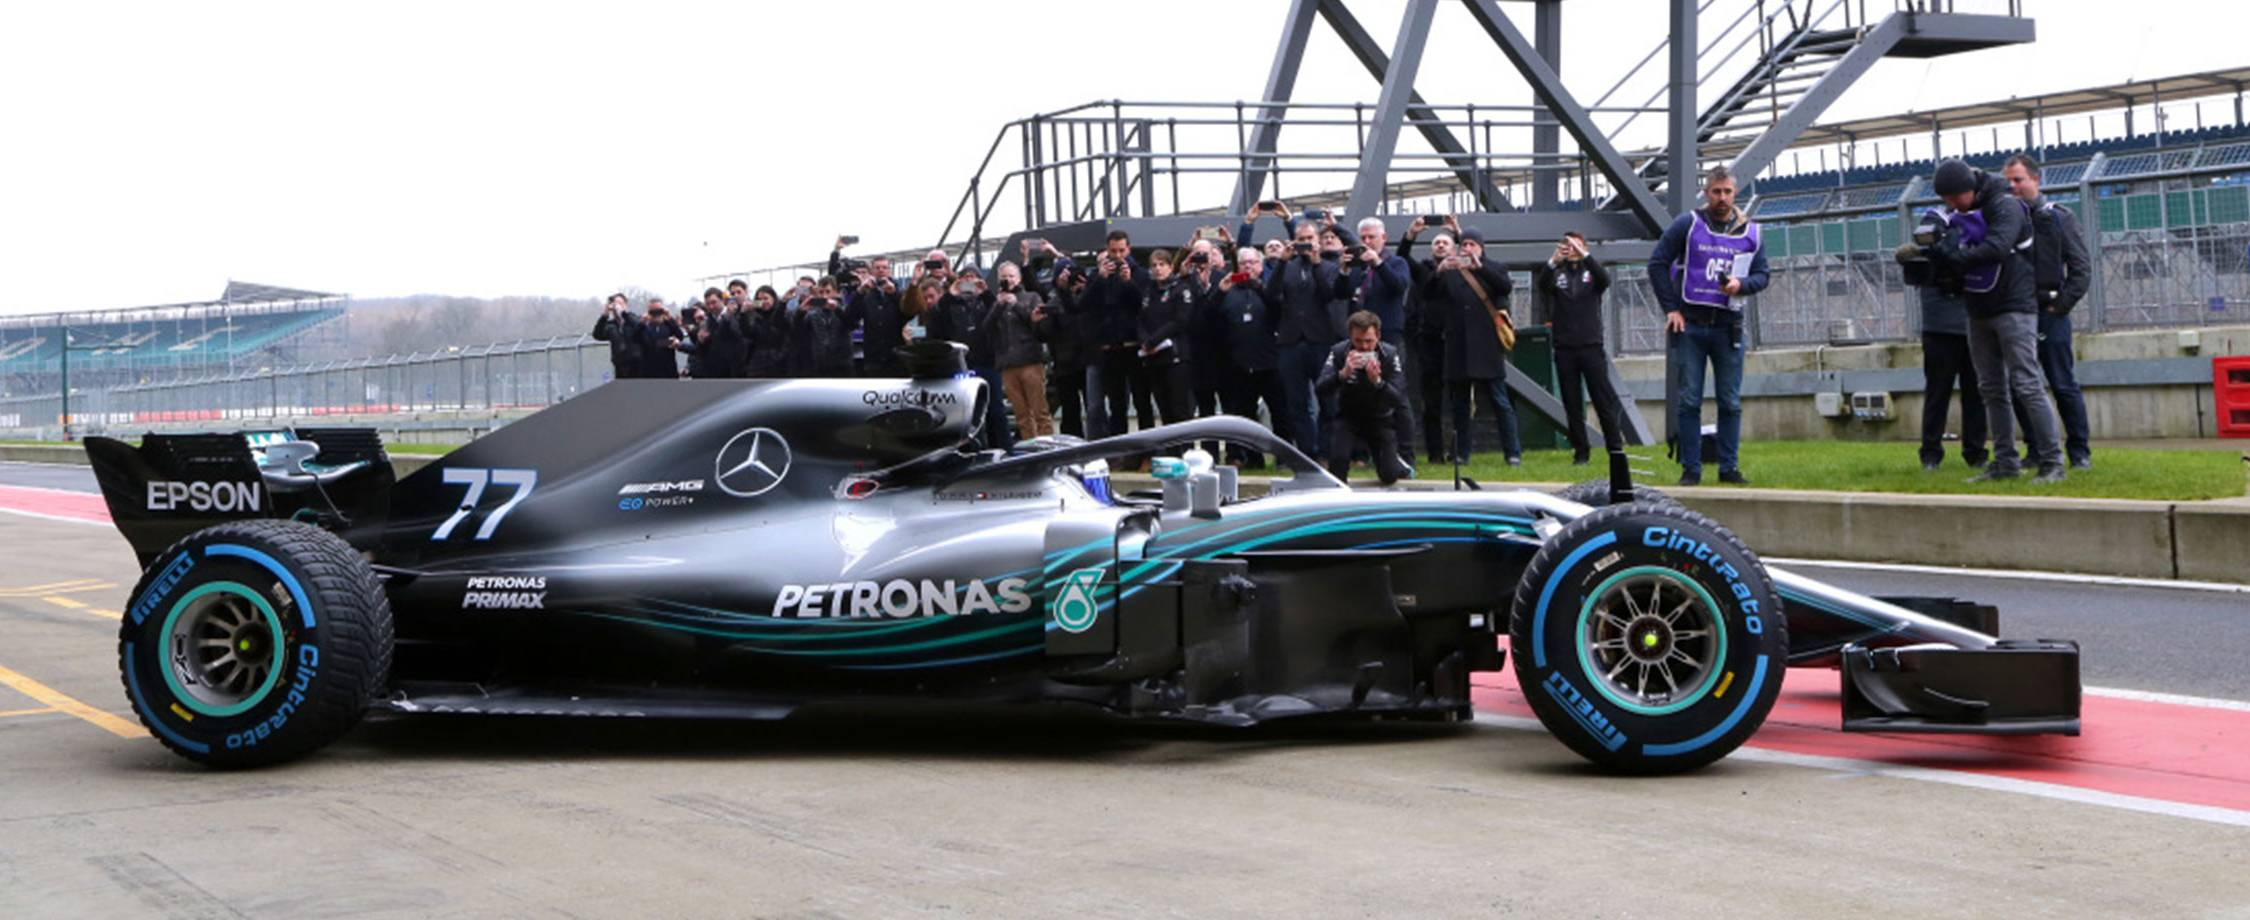 Mercedes W09 EQ Power + 3.jpg